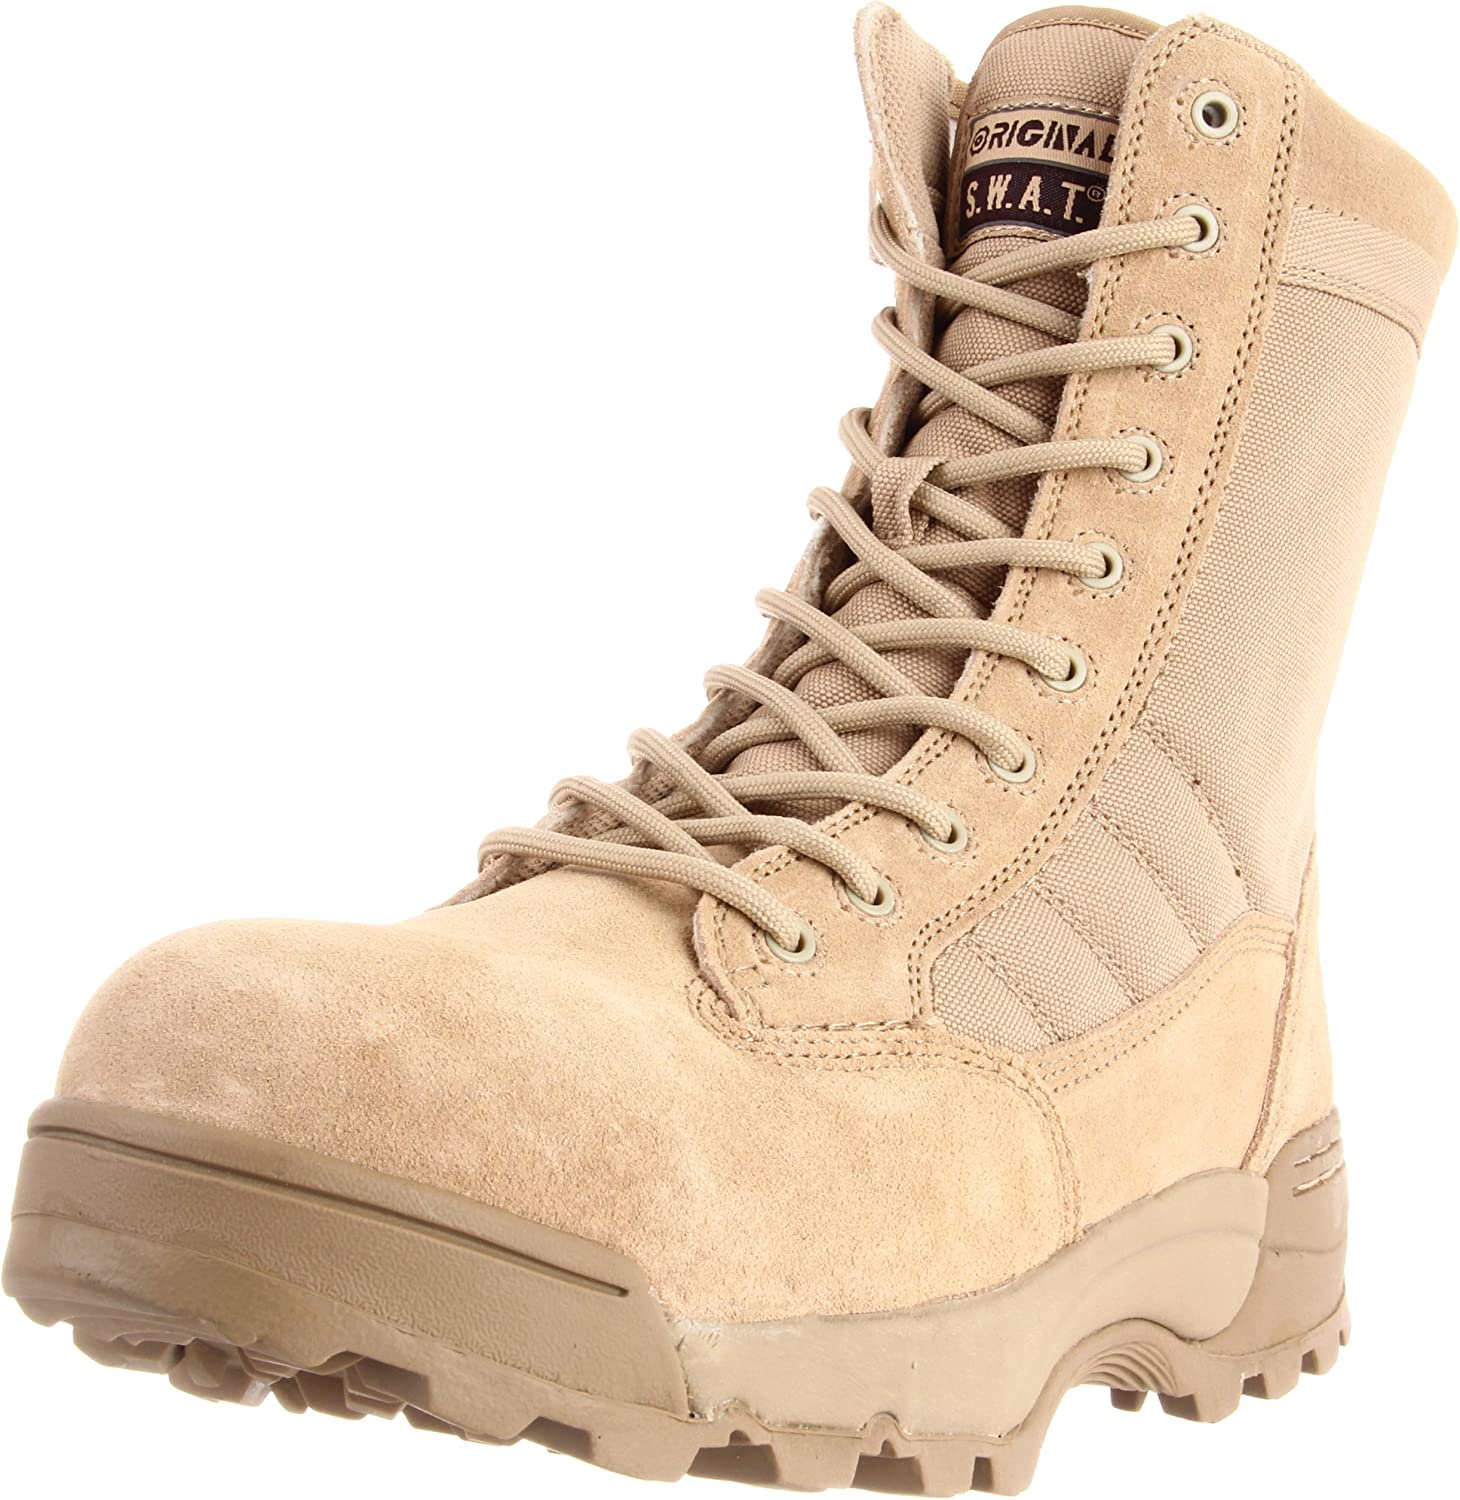 Original S.W.A.T. Men's Classic 9 Inch Side-zip Safety Tactical Boot, Tan, 10.5 D US